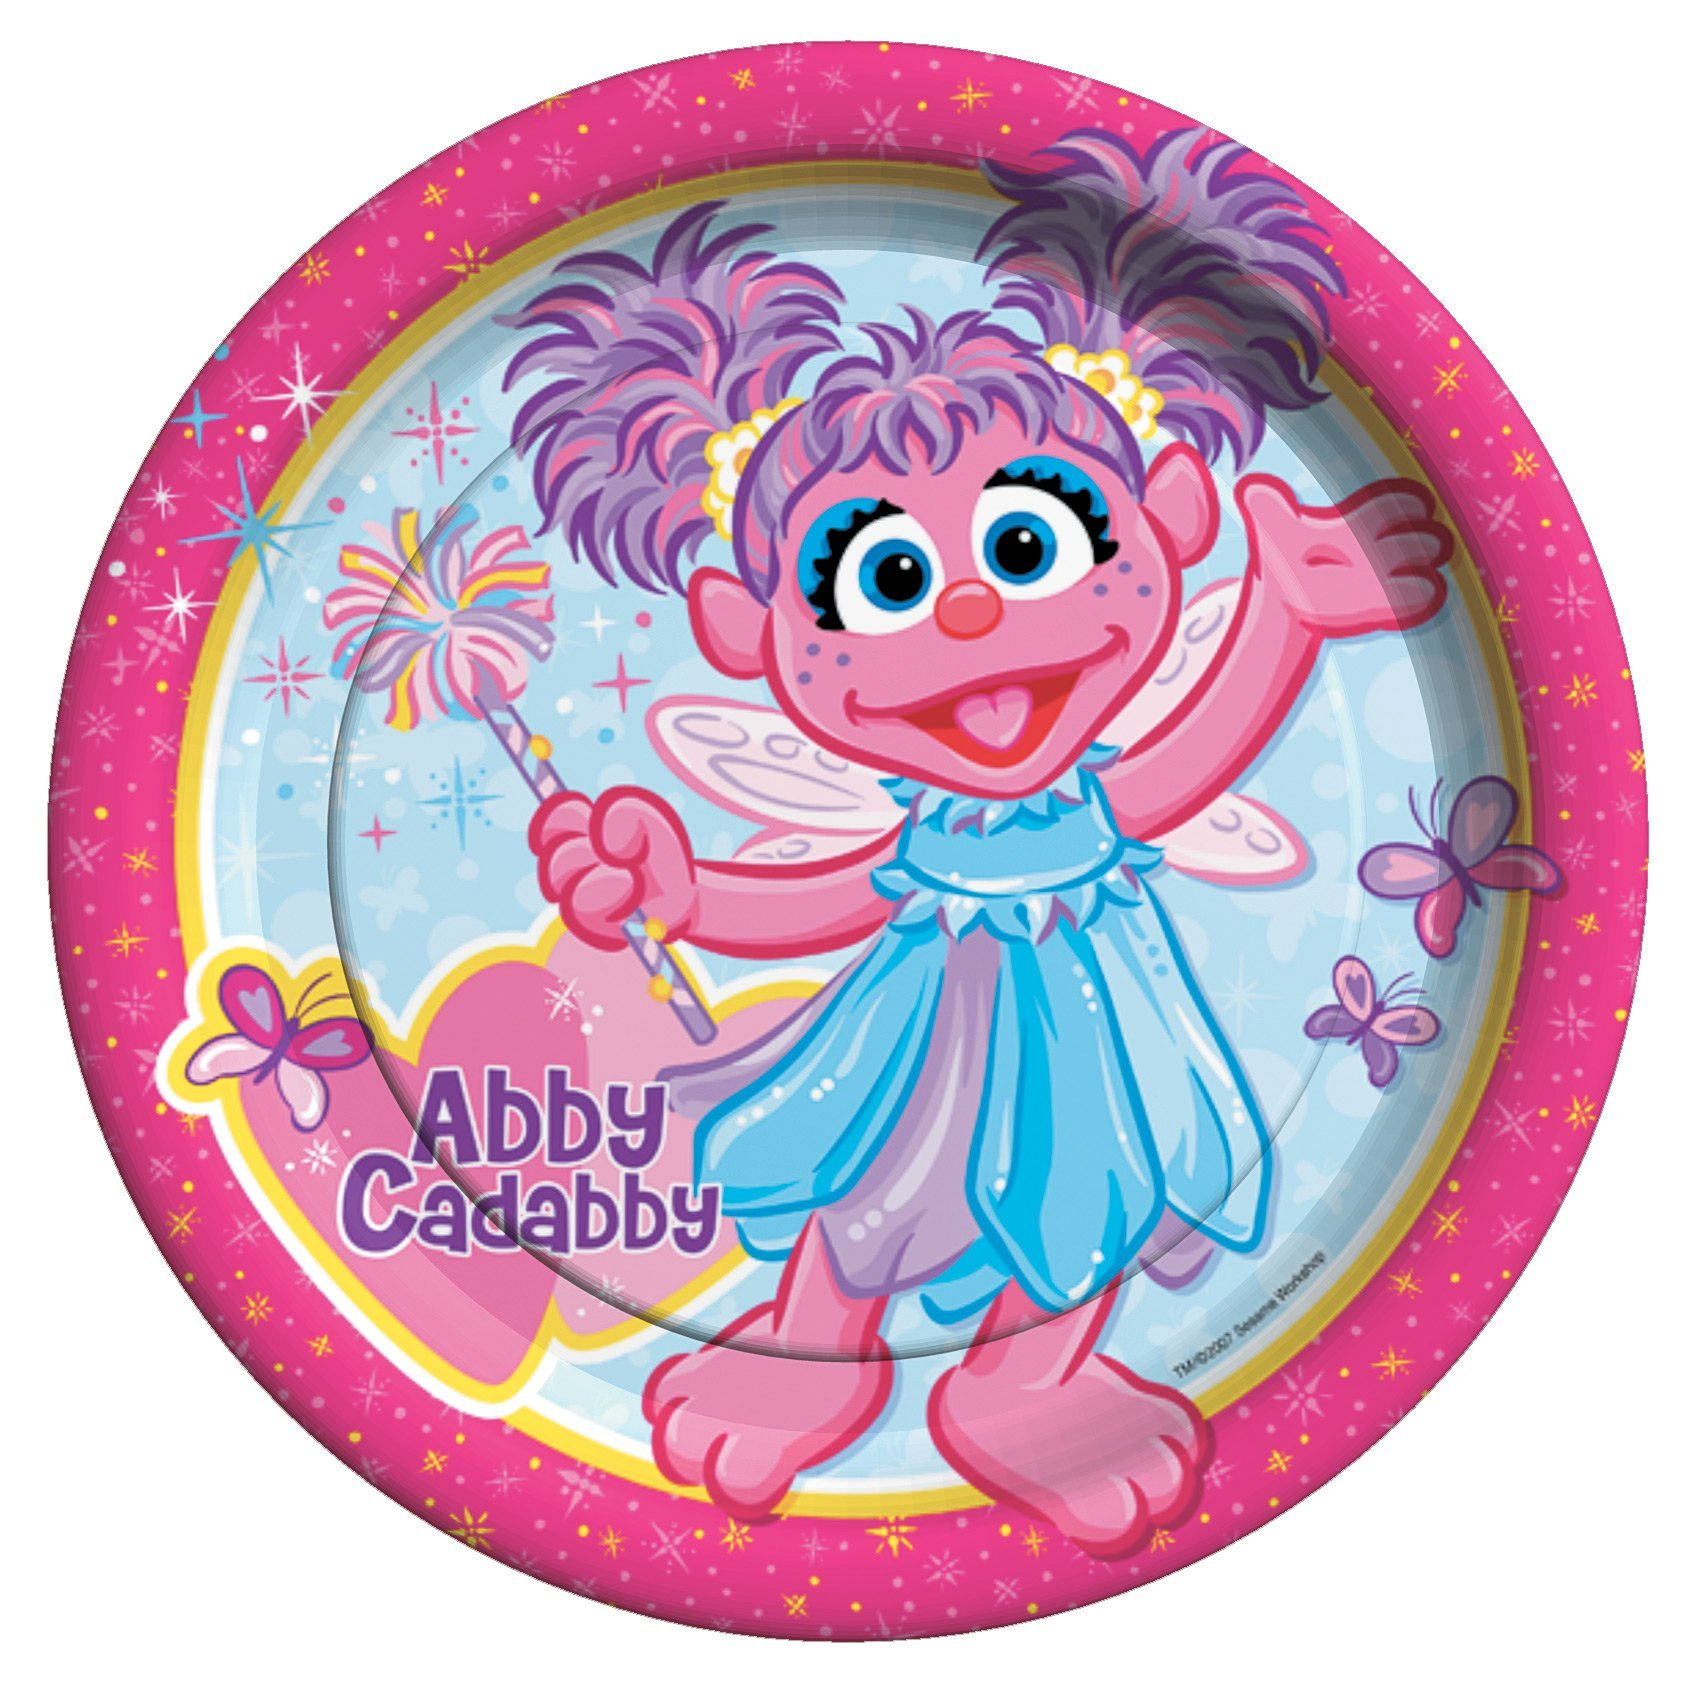 Abby Cadabby Dinner Plates by Official Costumes